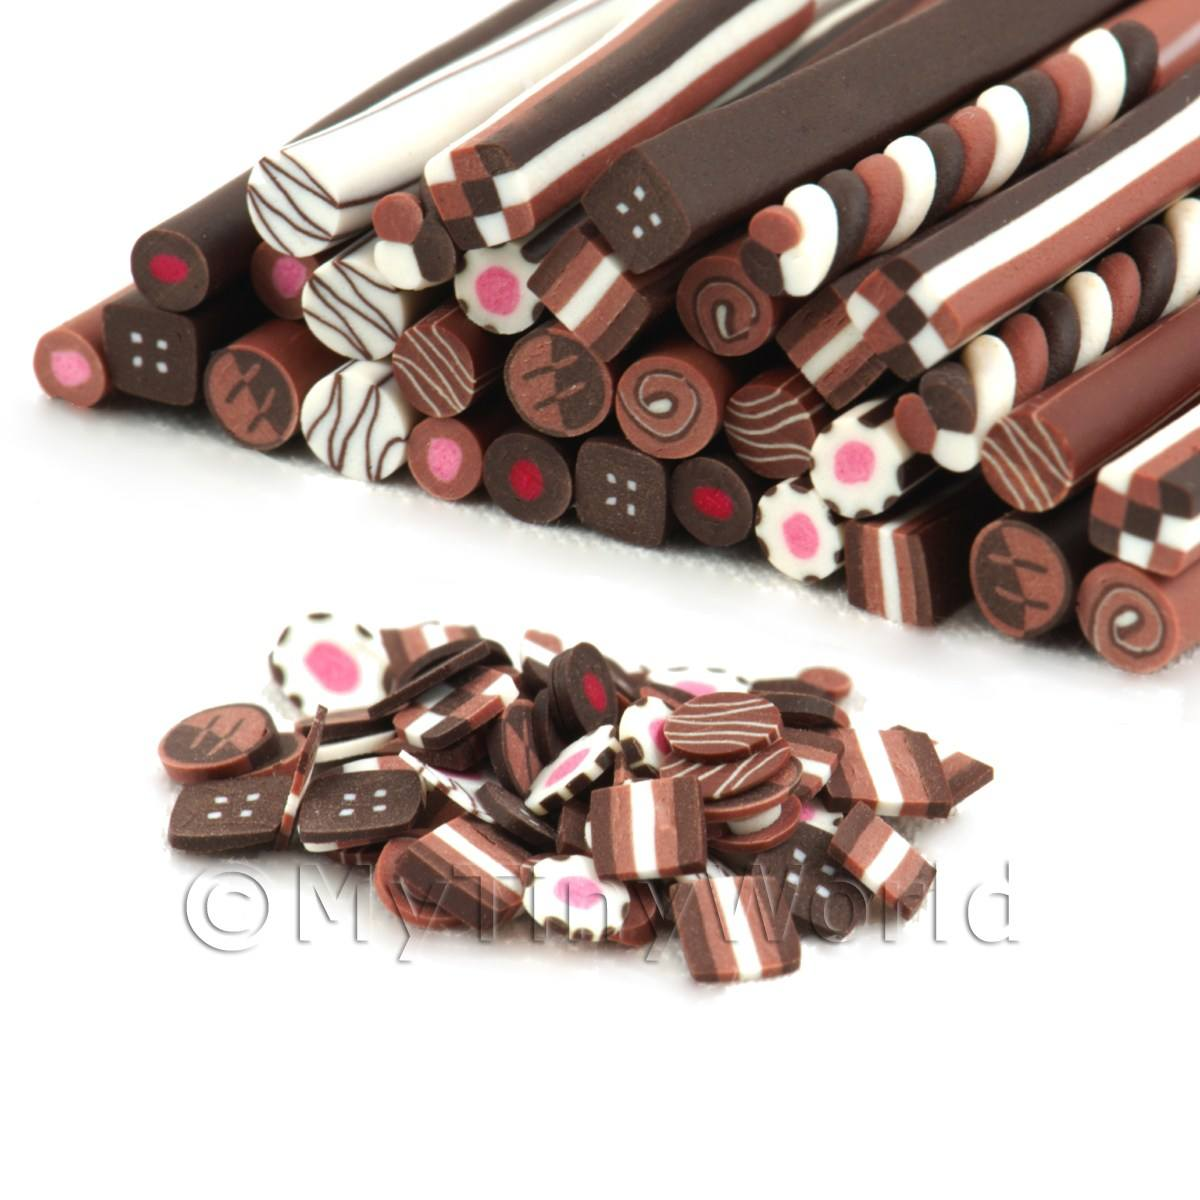 33 Mixed Chocolate Nail Art Canes (09NCM1)